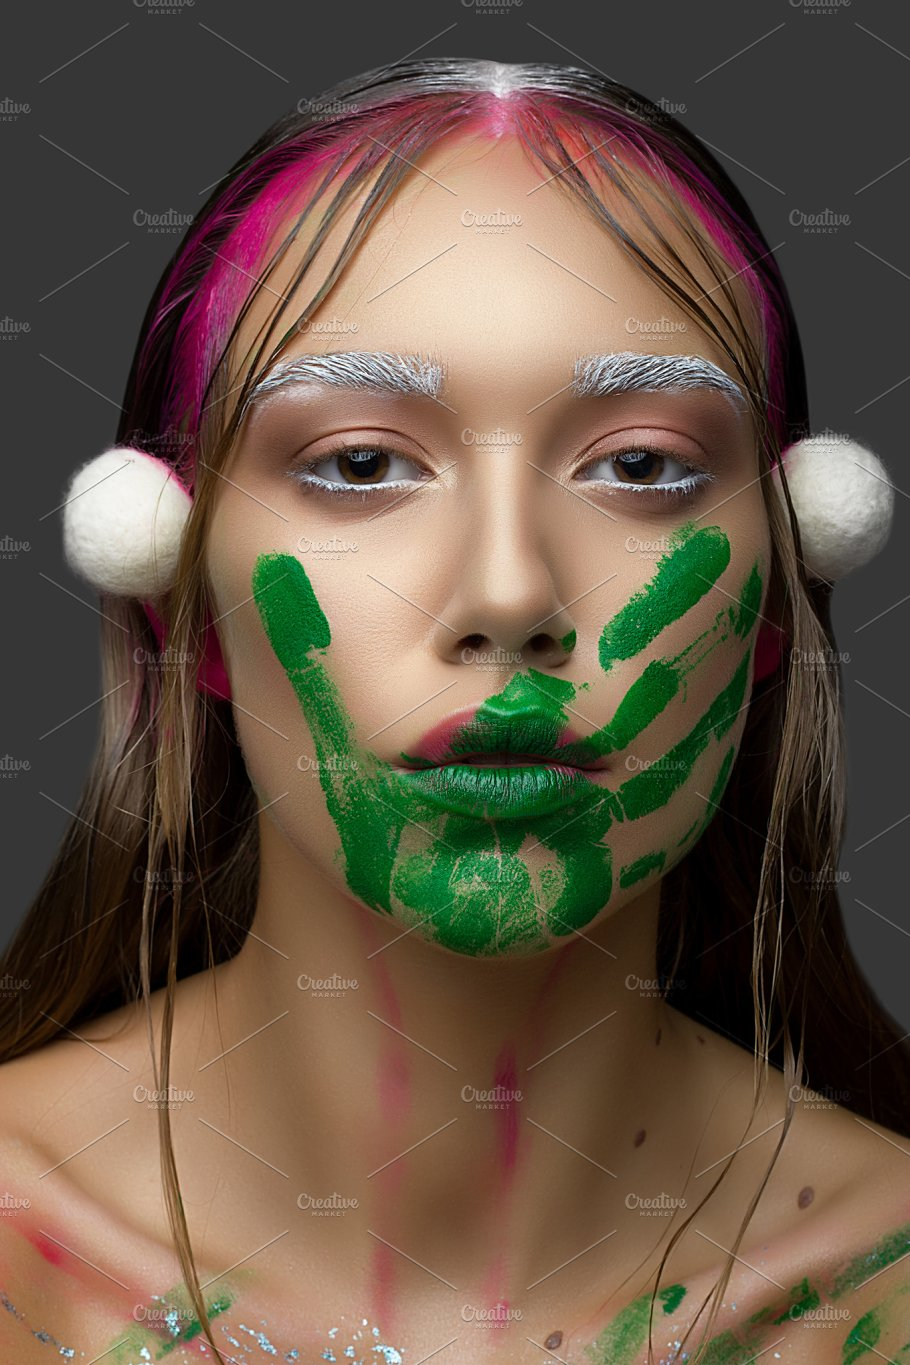 Beautiful Young Woman With Clean Fresh Skin Pink Makeup And Handprint Green Paint Beauty